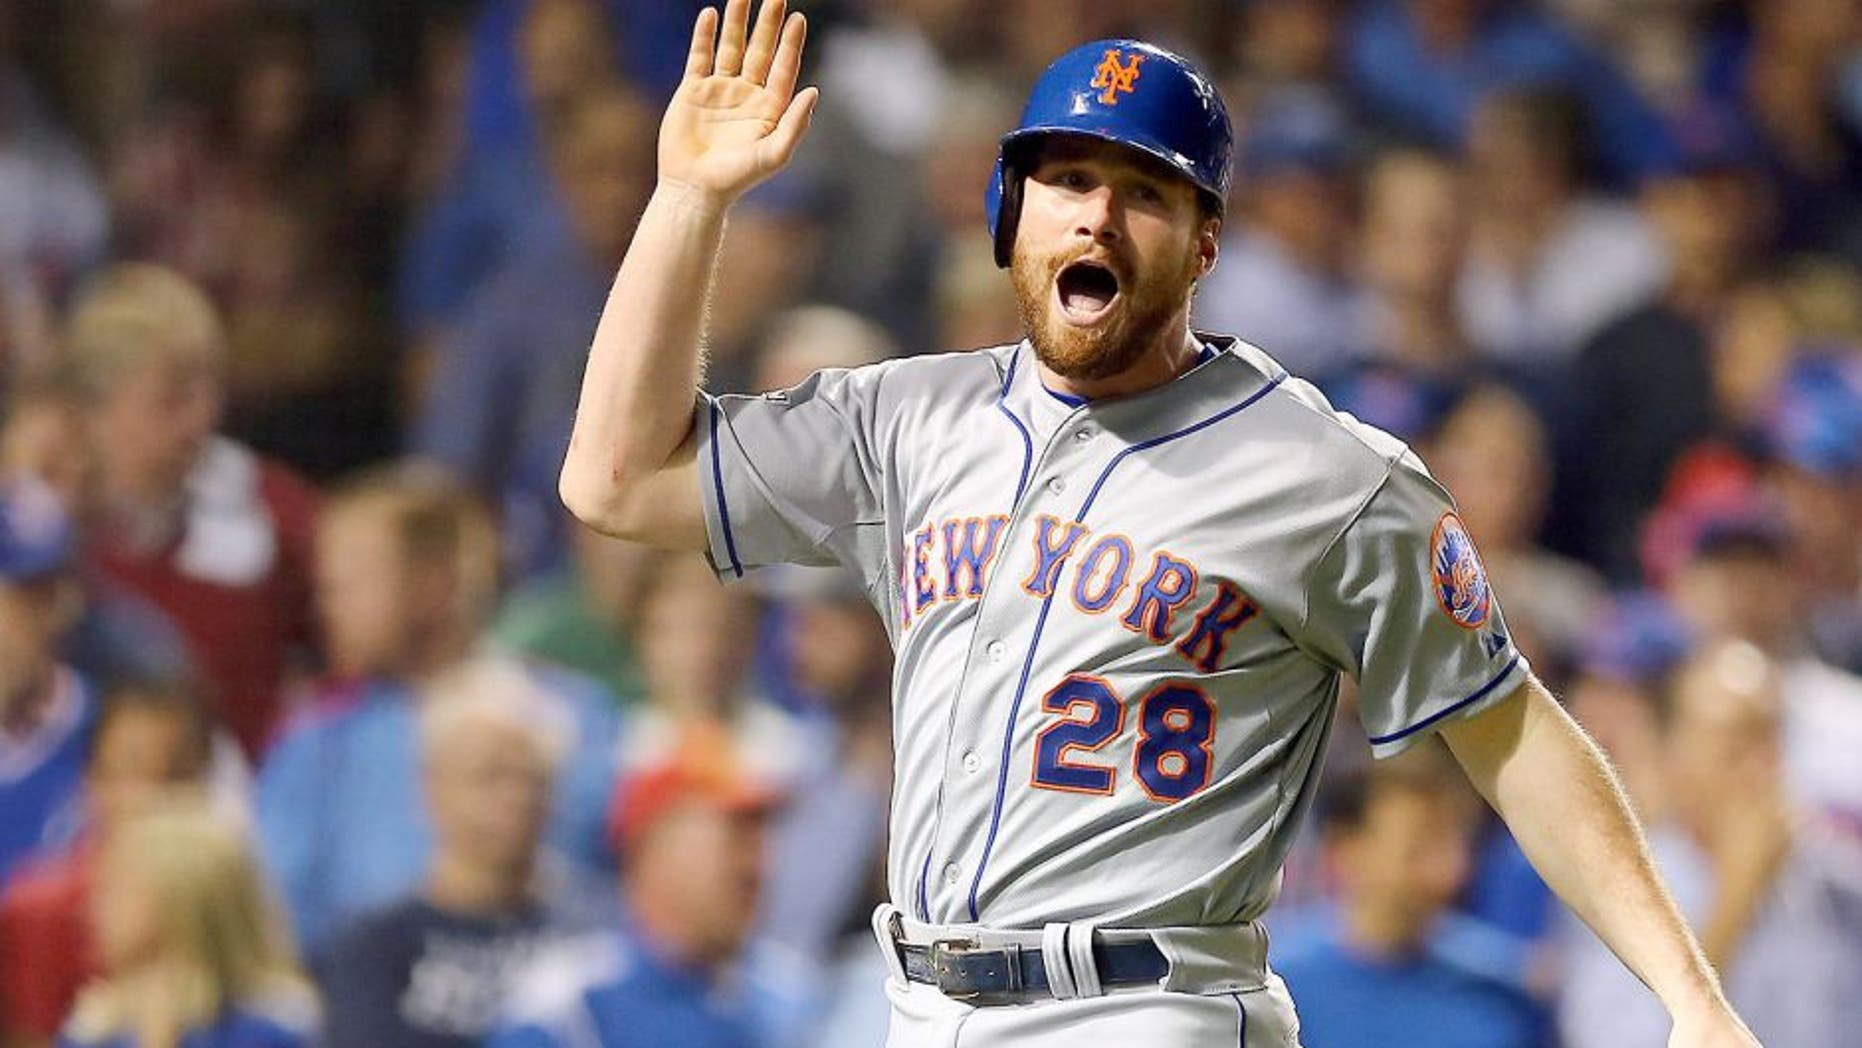 CHICAGO, IL - OCTOBER 21: Daniel Murphy #28 of the New York Mets celebrates after scoring off of a double hit by Lucas Duda #21 of the New York Mets in the second inning against Travis Wood #37 of the Chicago Cubs during game four of the 2015 MLB National League Championship Series at Wrigley Field on October 21, 2015 in Chicago, Illinois. (Photo by Elsa/Getty Images)